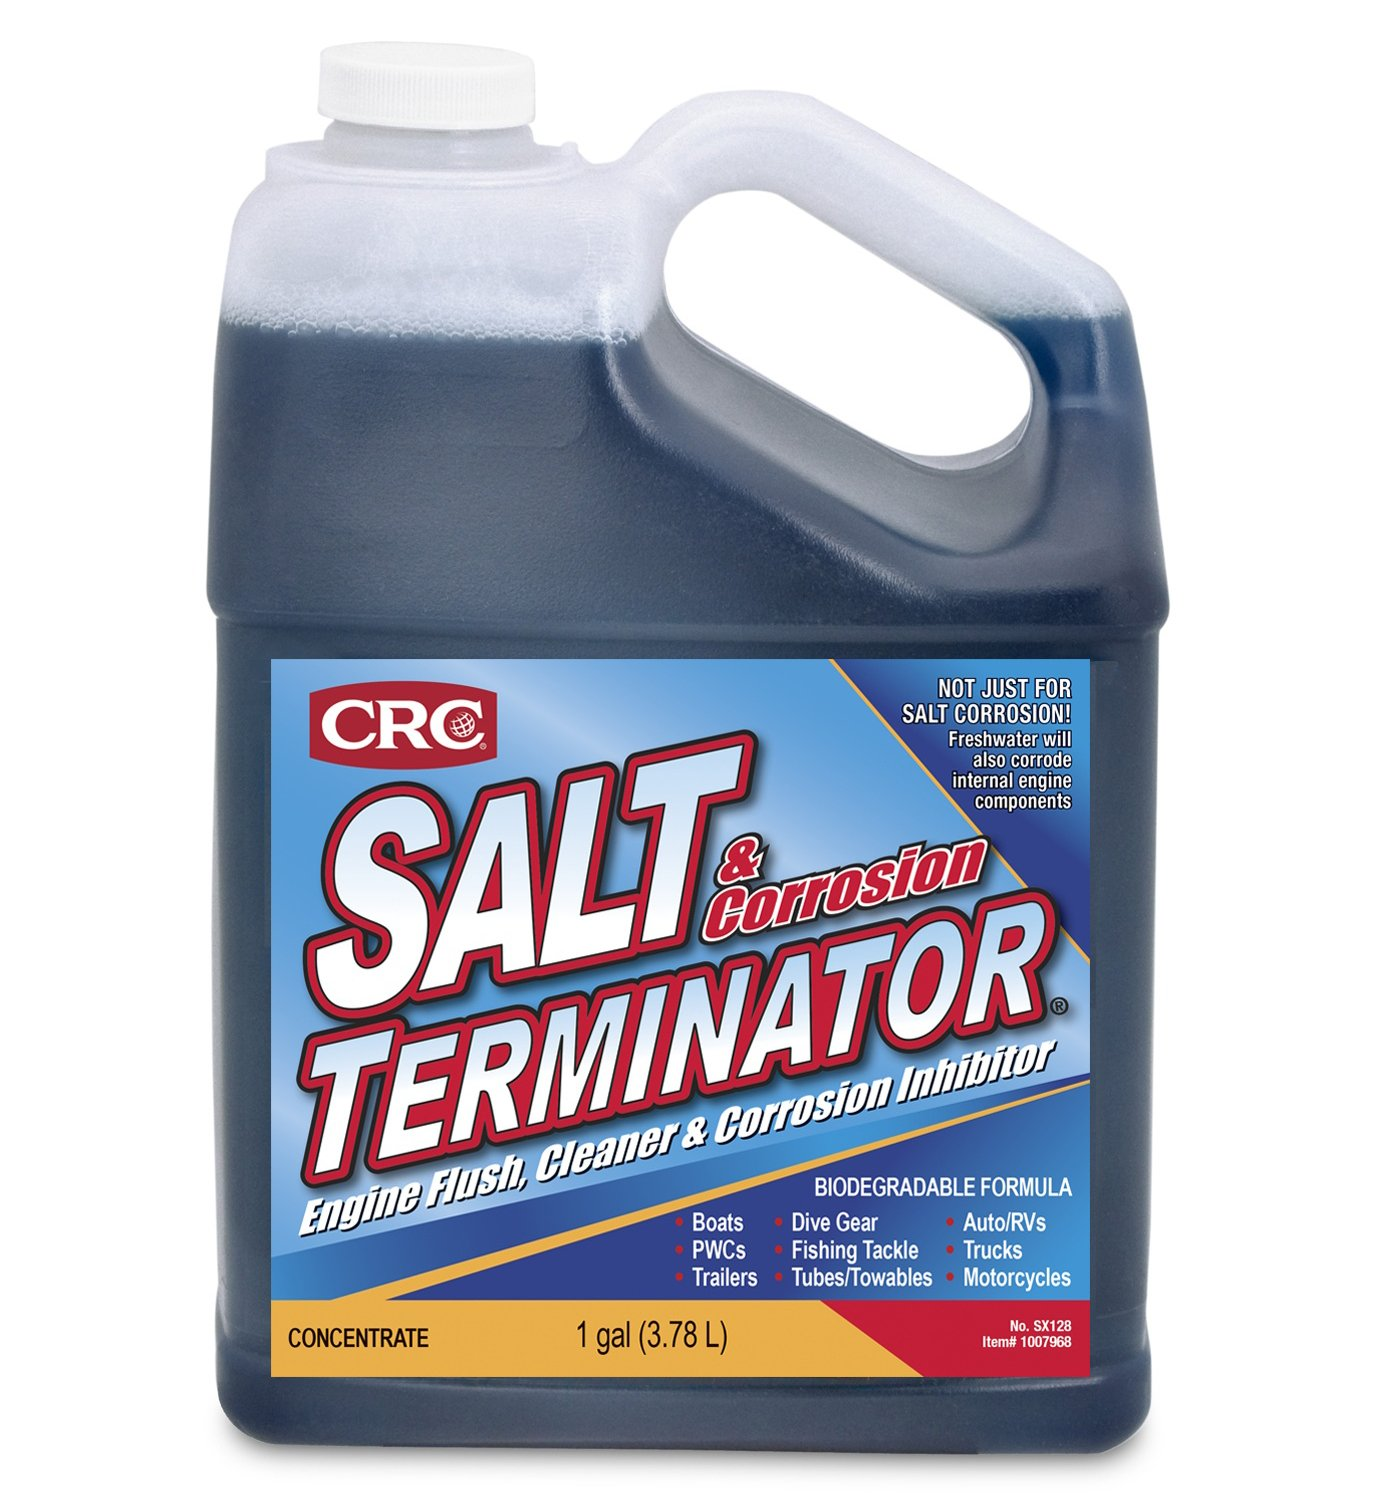 CRC SX128 Salt Terminator Engine Flush, Cleaner and Corrosion Inhibitor - 1 Gallon by CRC